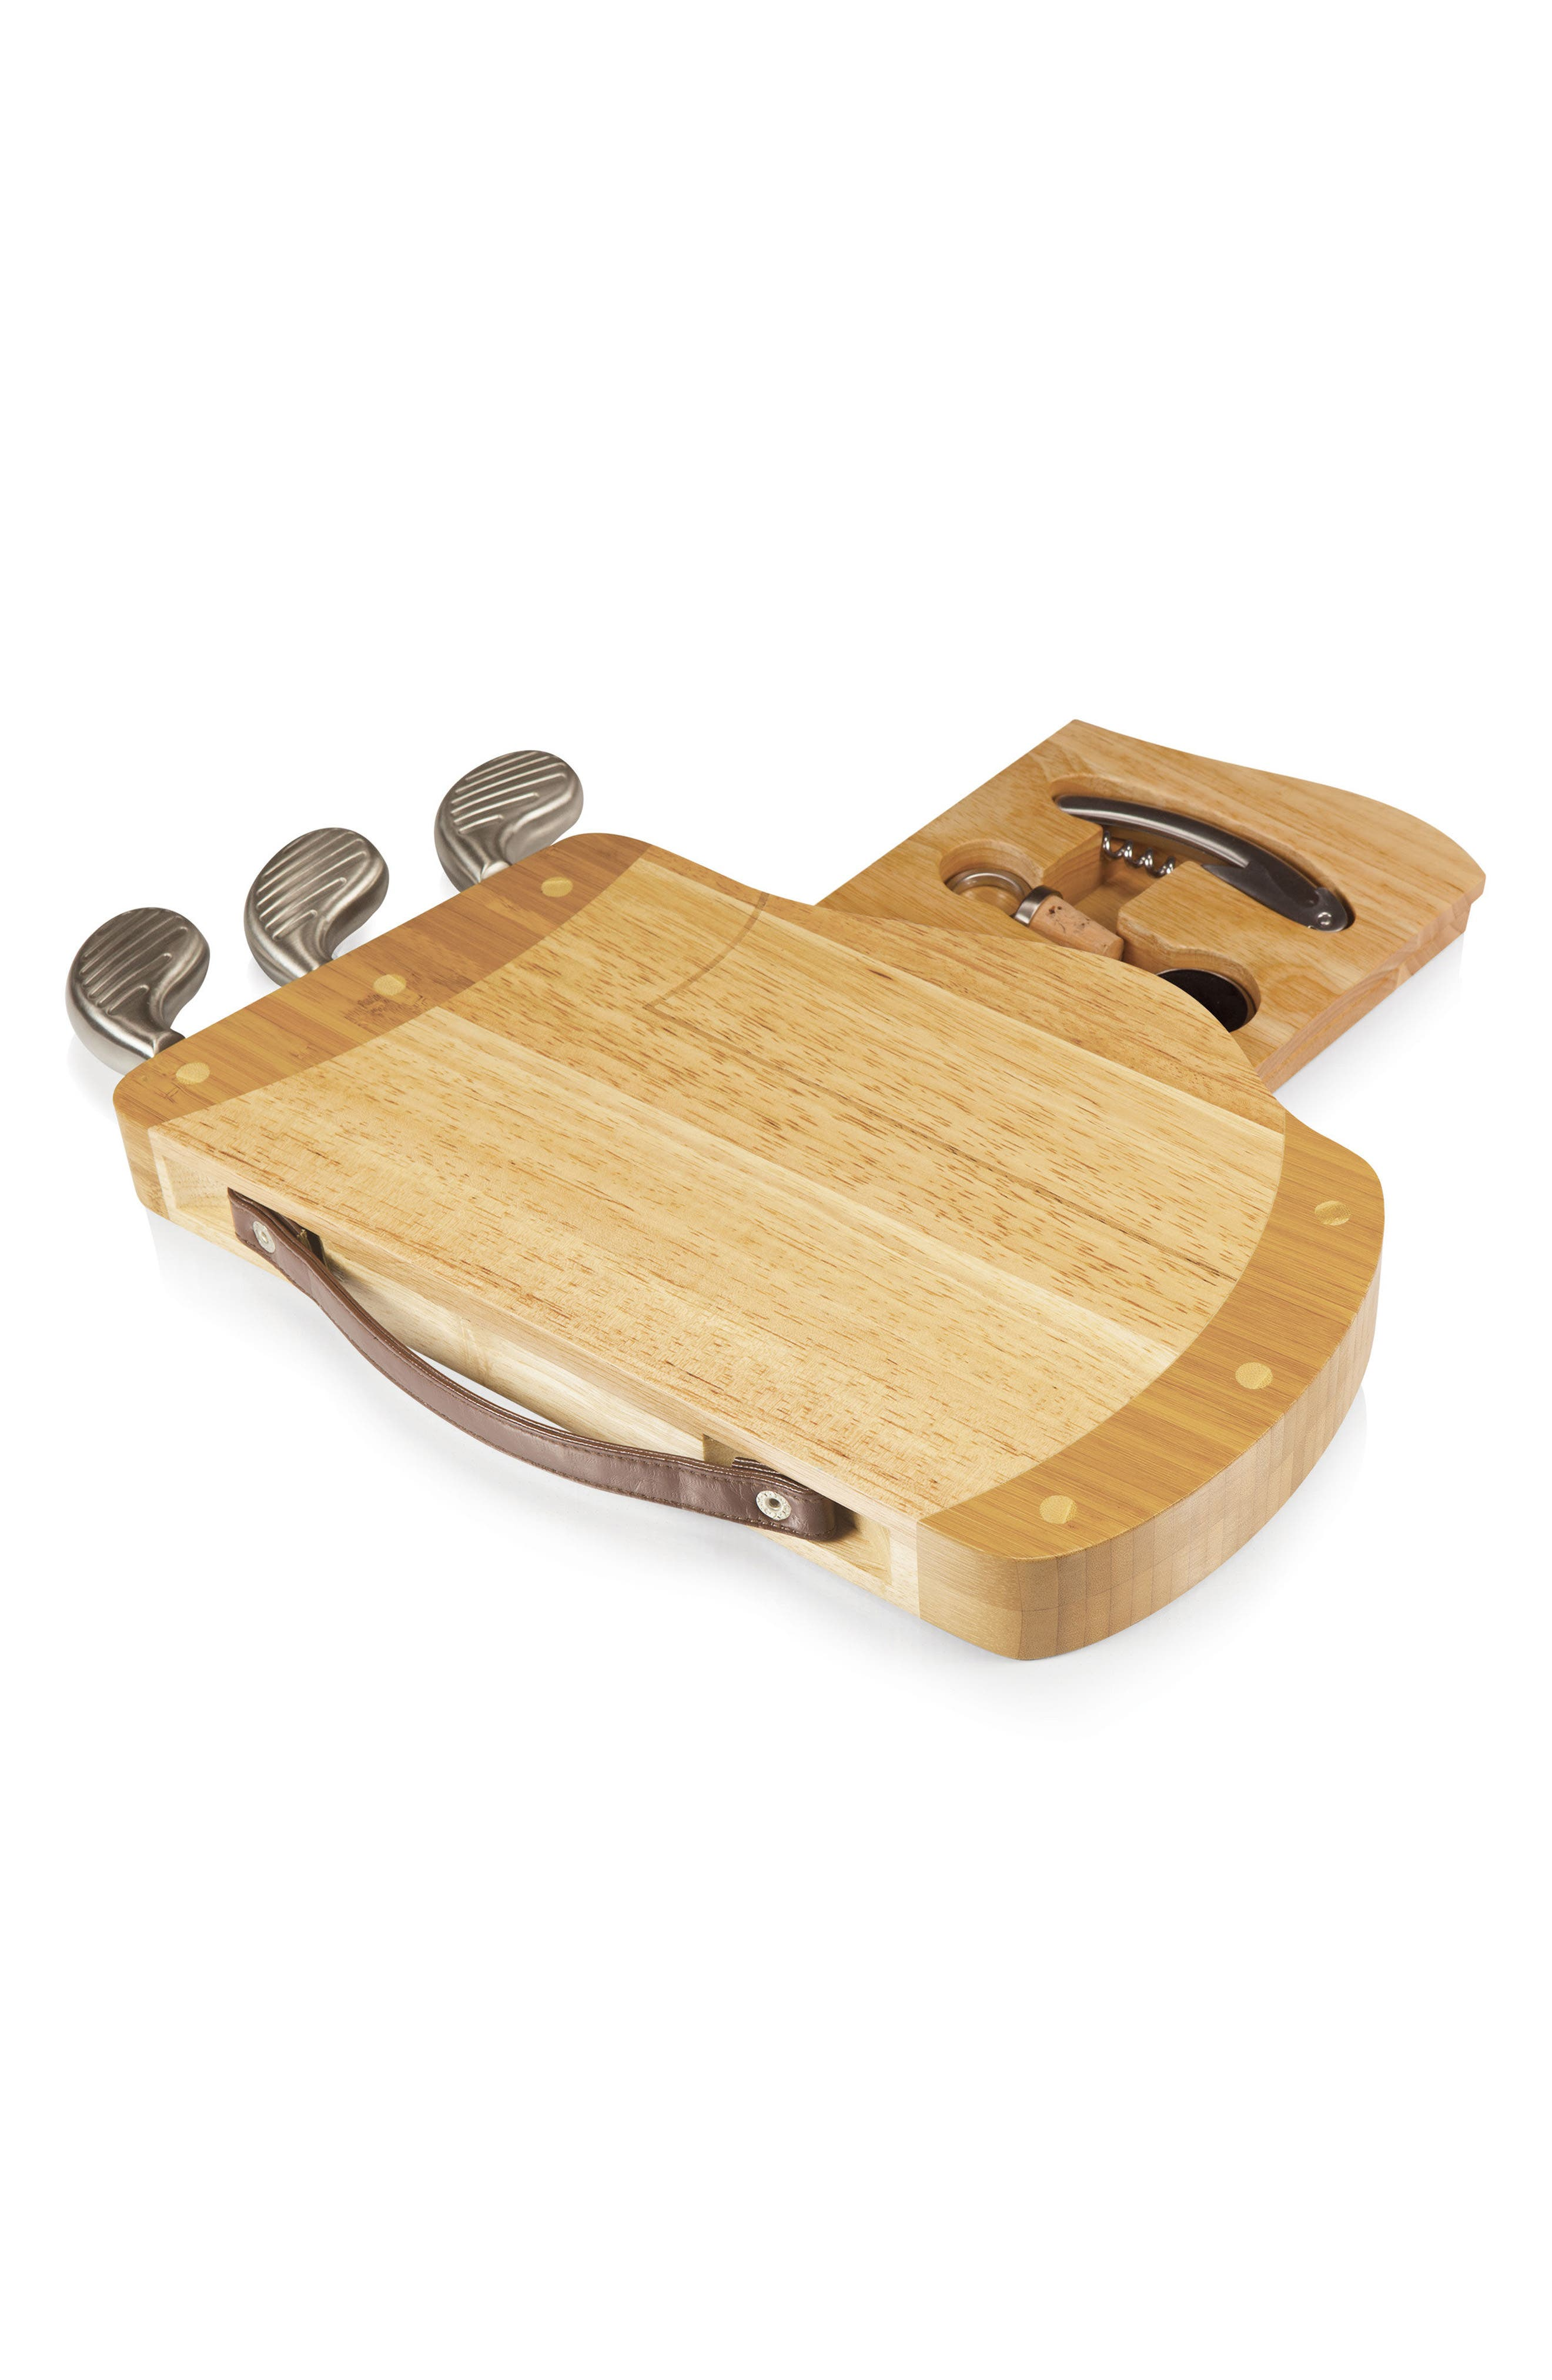 Alternate Image 2  - Picnic Time Caddy Cheese Board & Tools Set